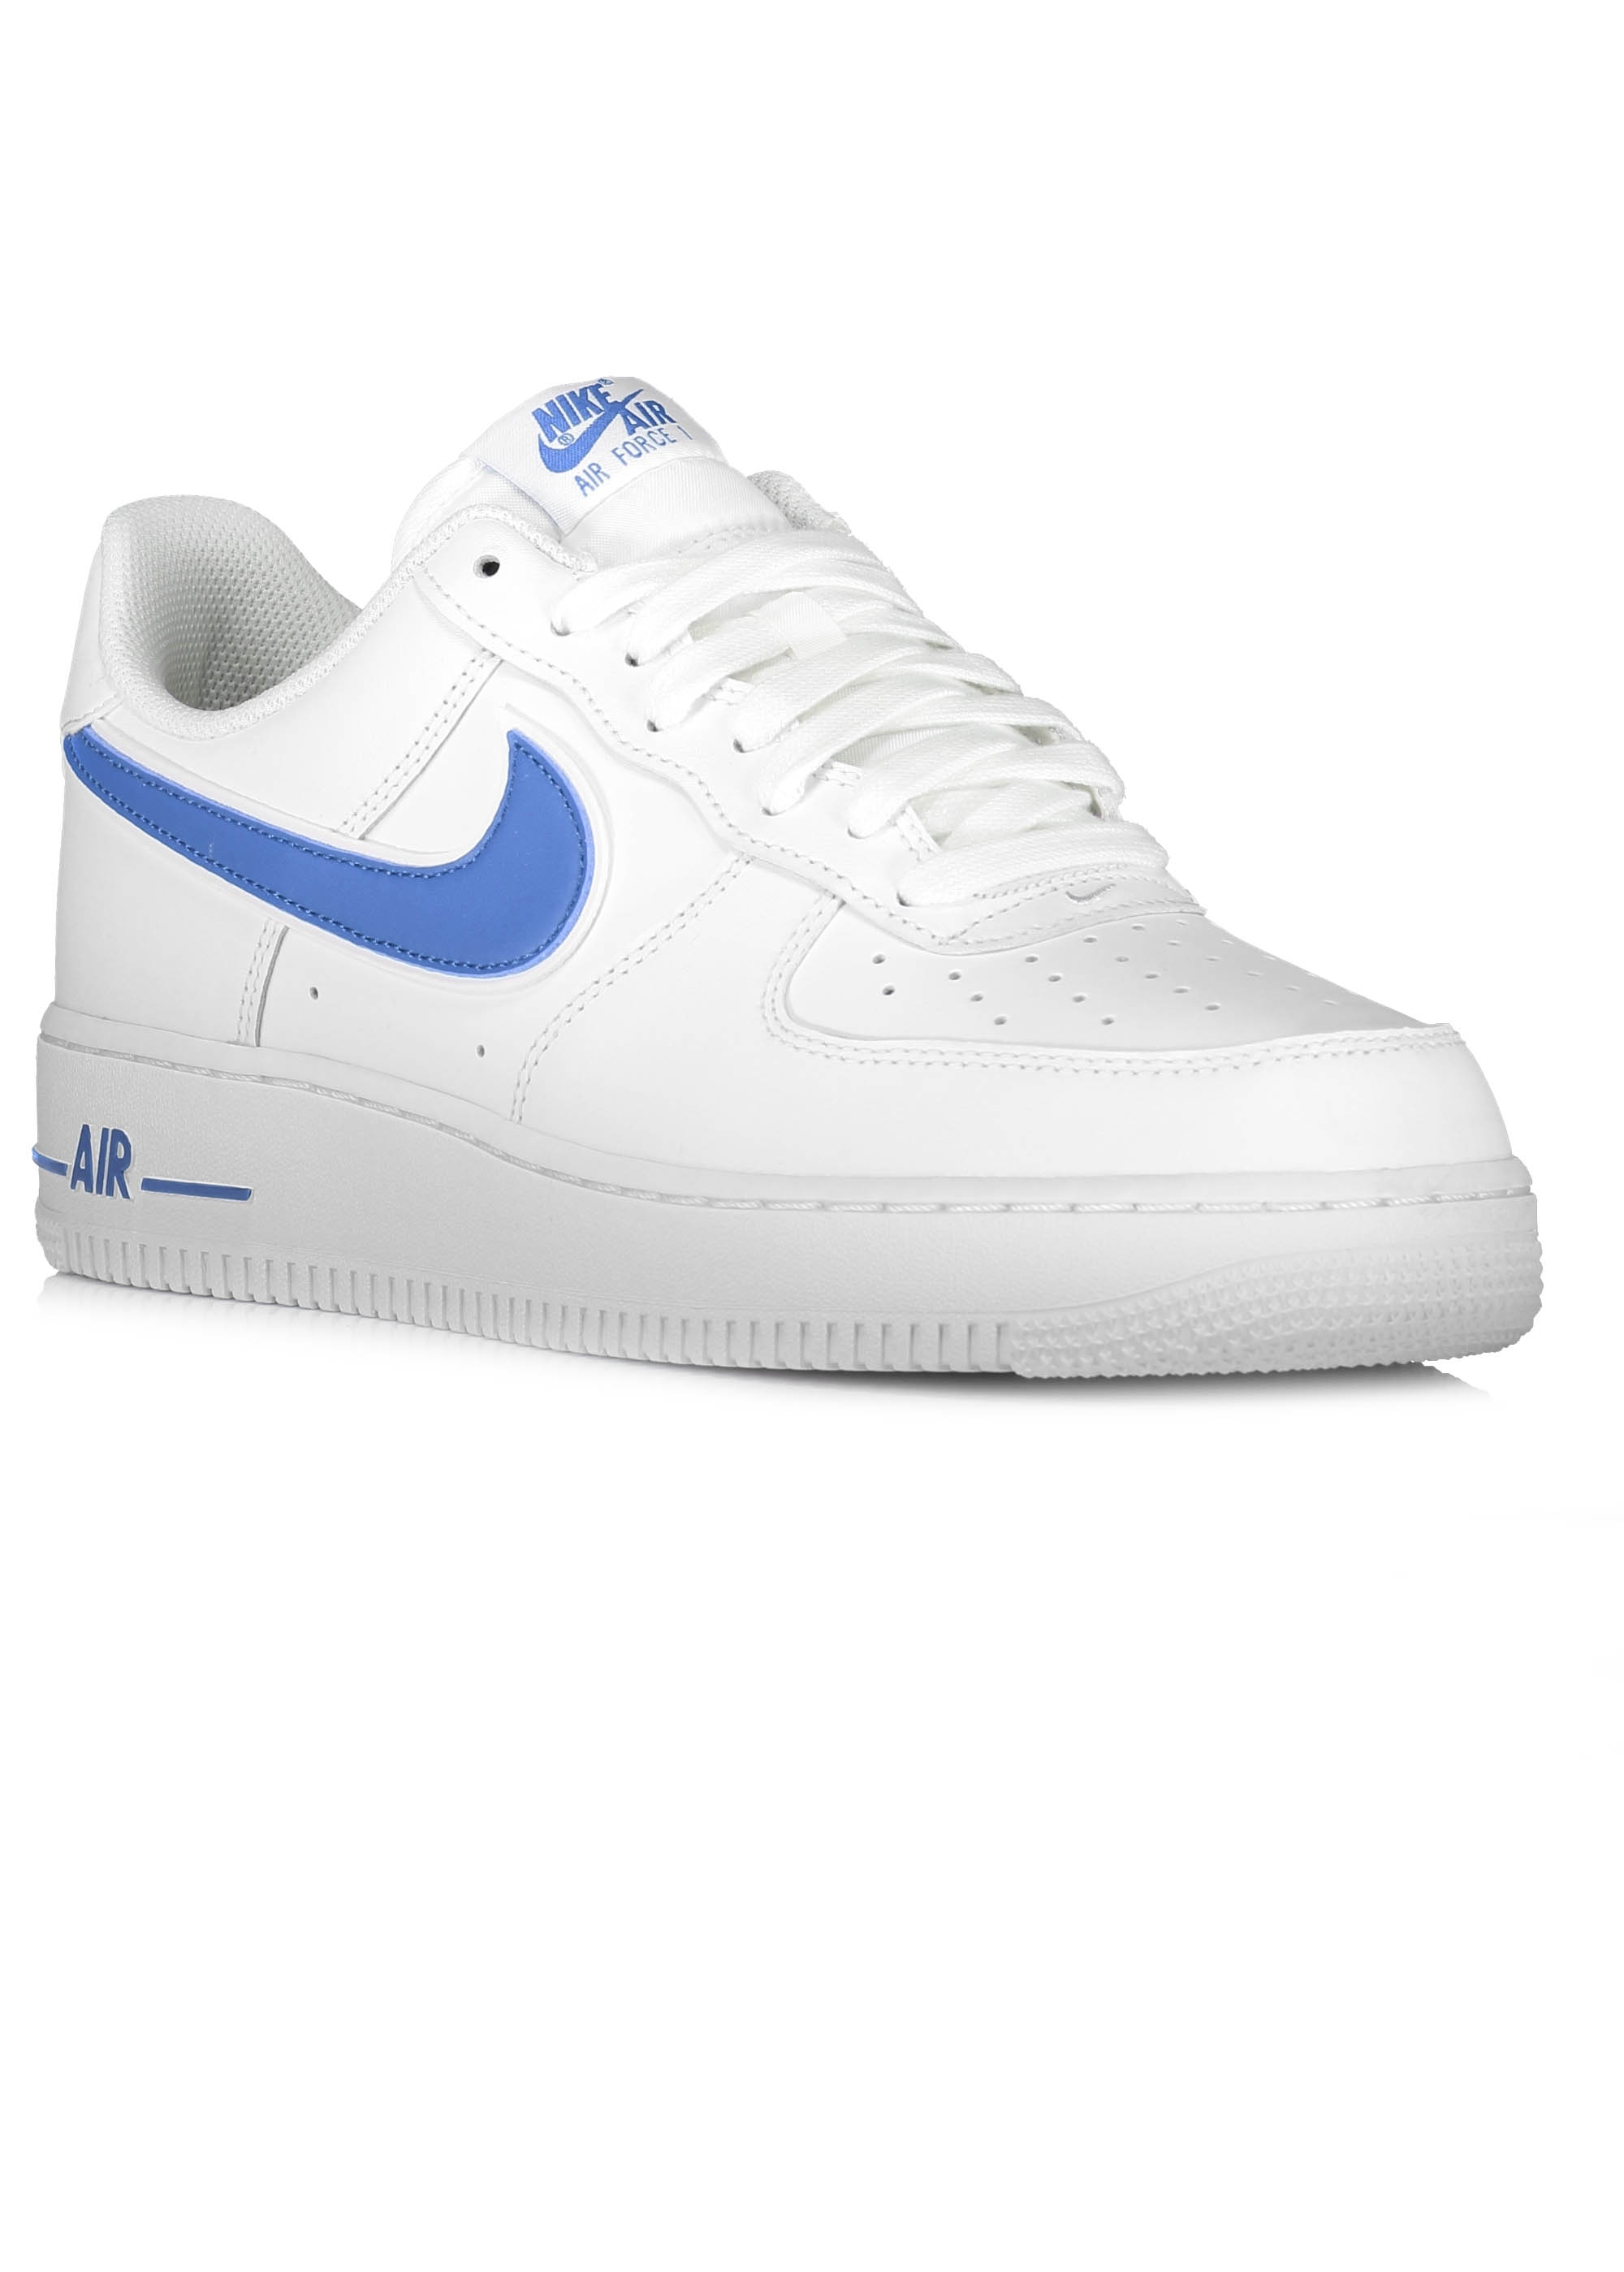 air force 1 42.5